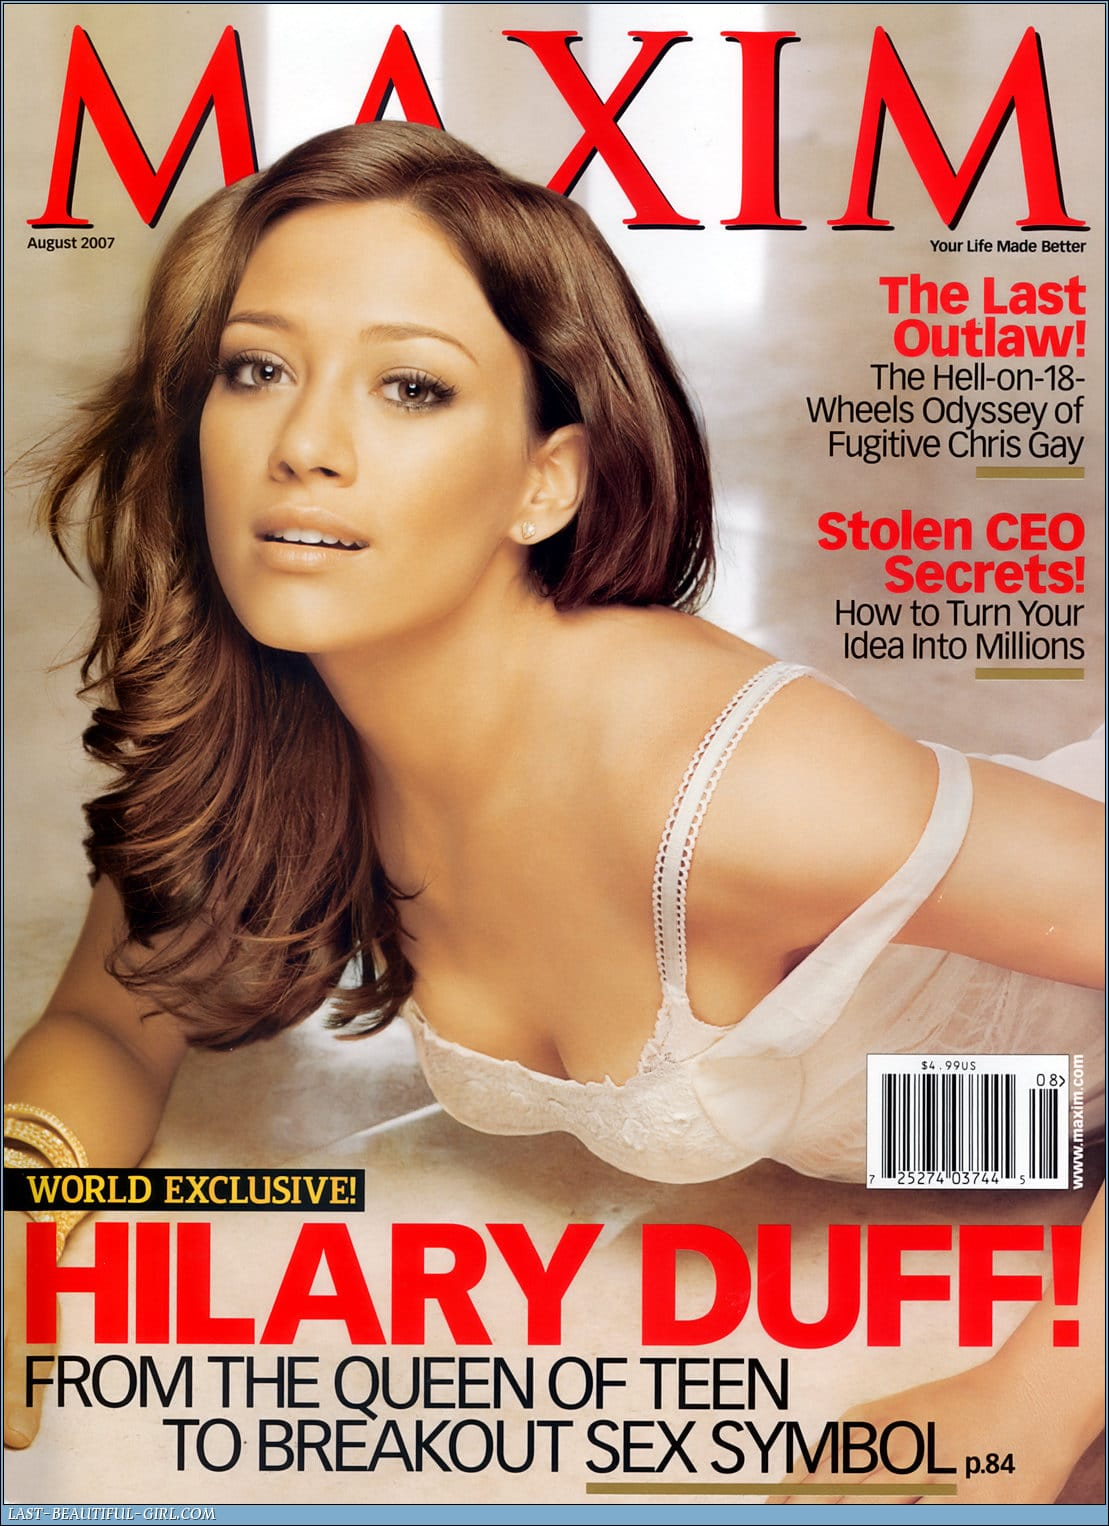 Magazine cover, maxim by Hilary duff.